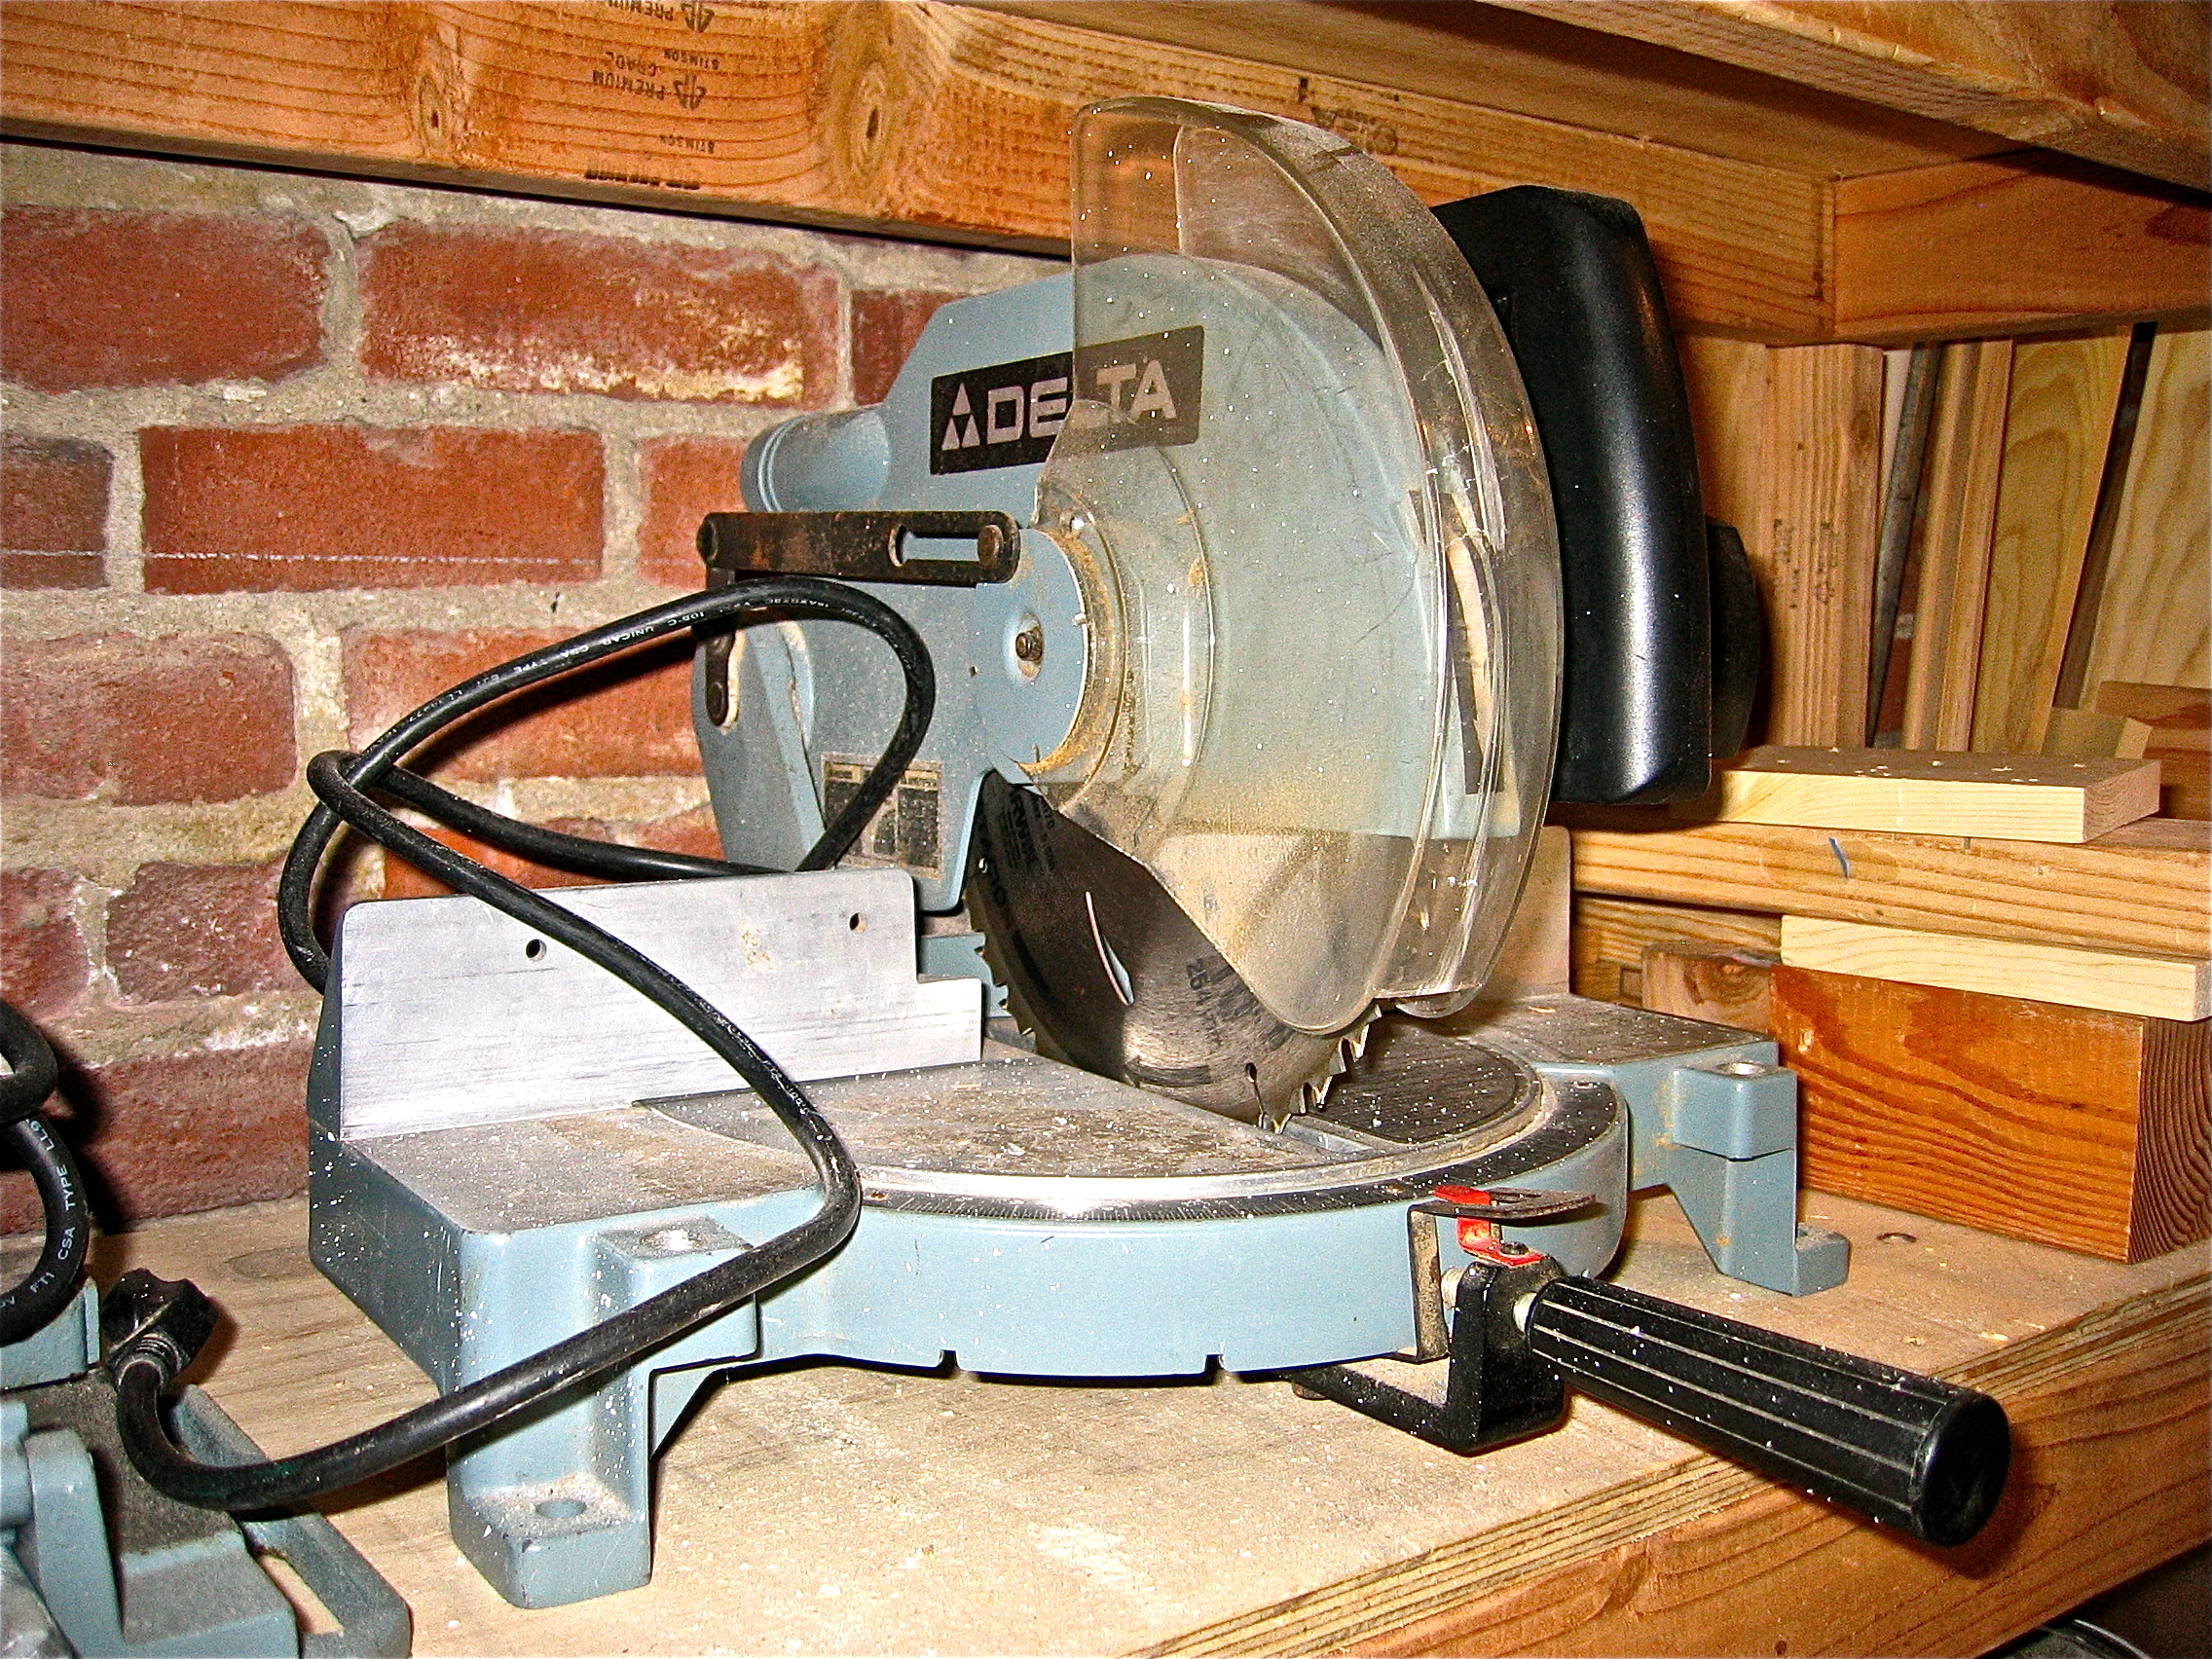 Picture of Saw Some Chunks of 2x4